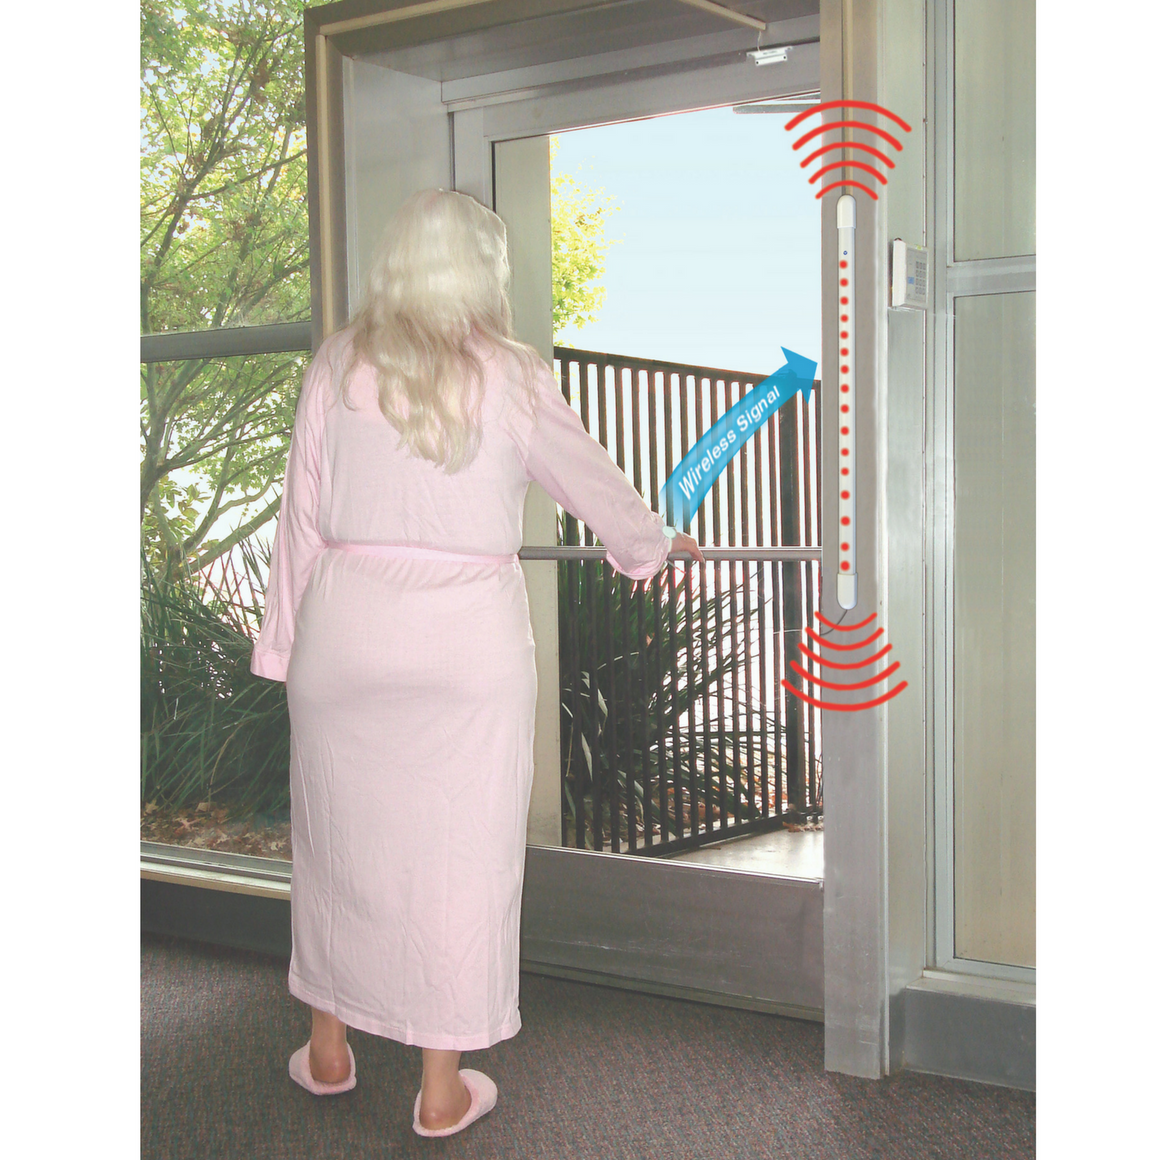 TL-3005SYSR2 - single door alert system action